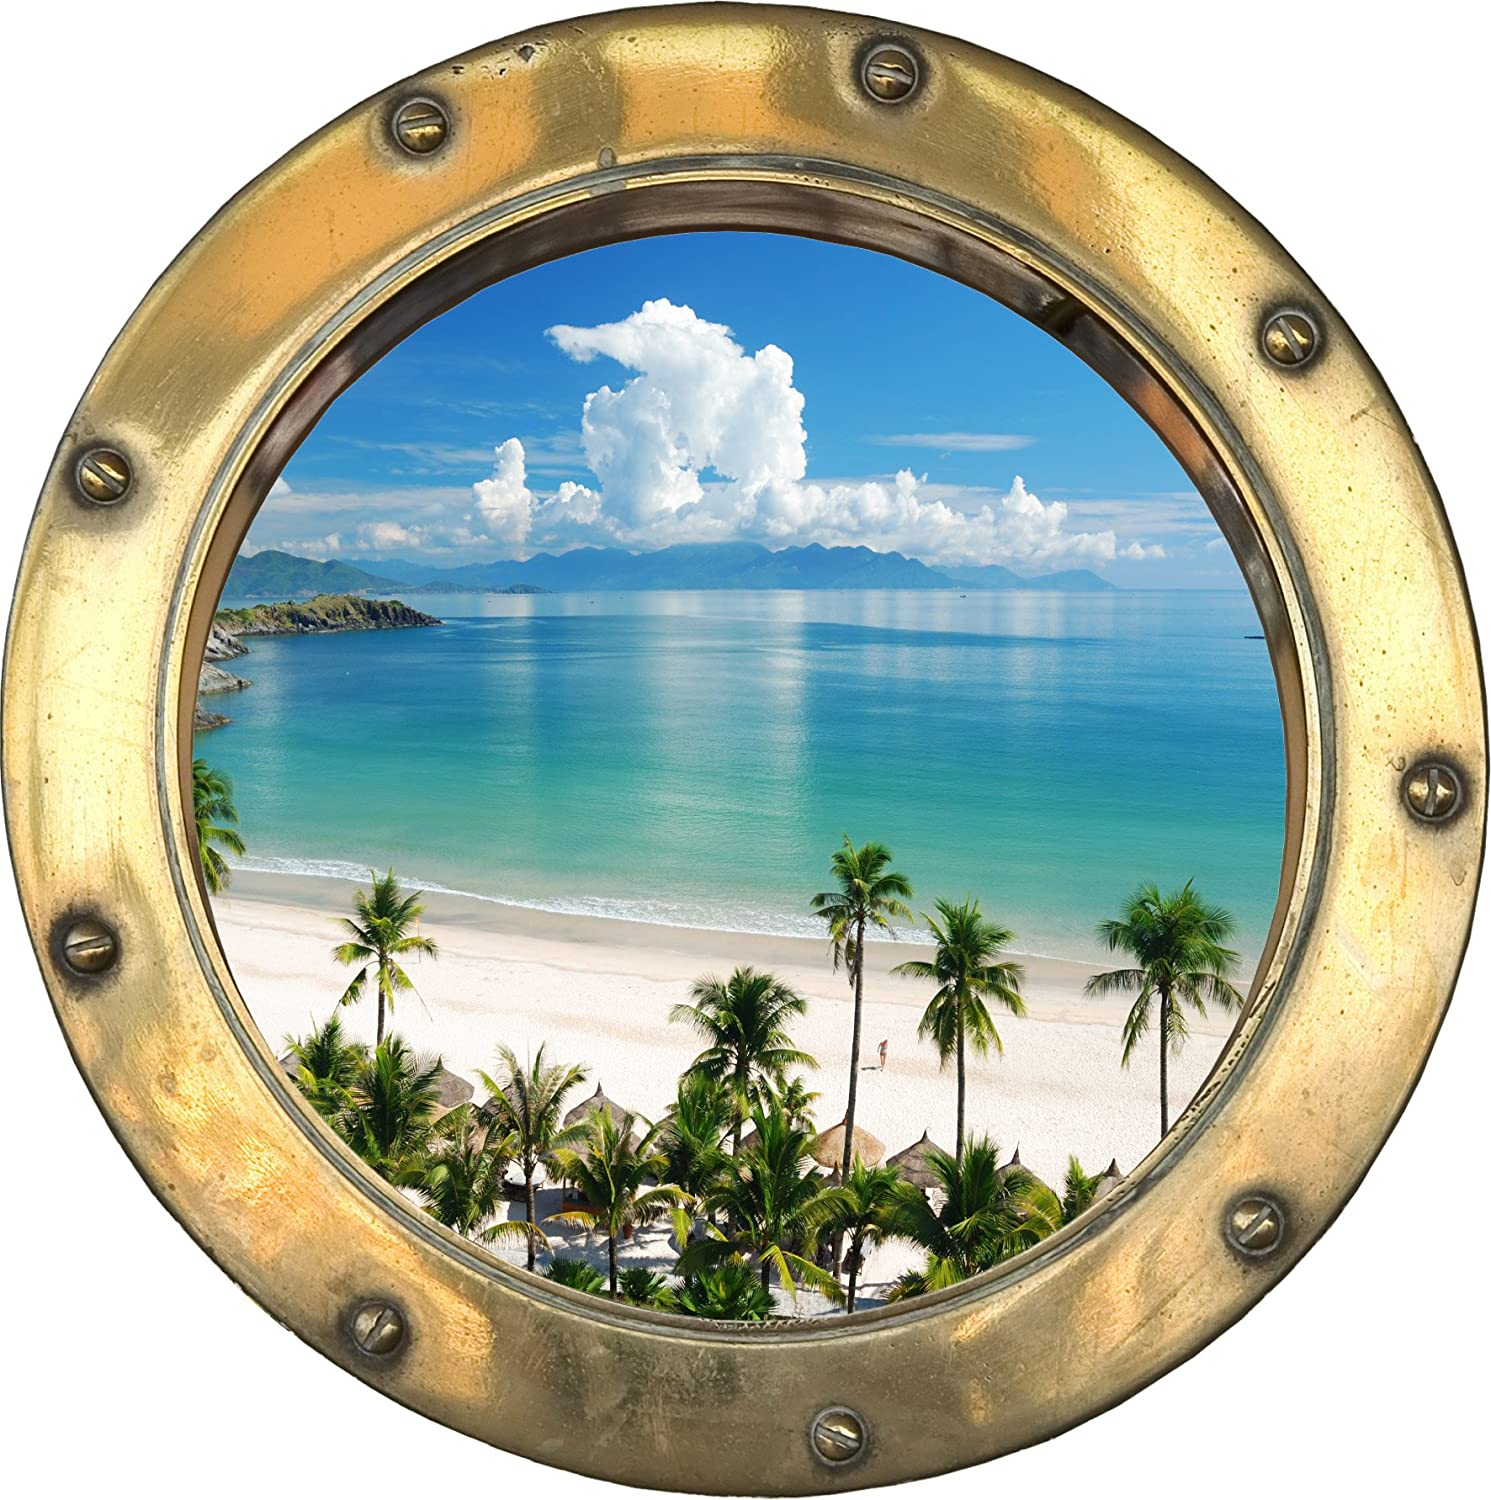 H313 Self Adhesive Sticker Optical Illusion Porthole Ship